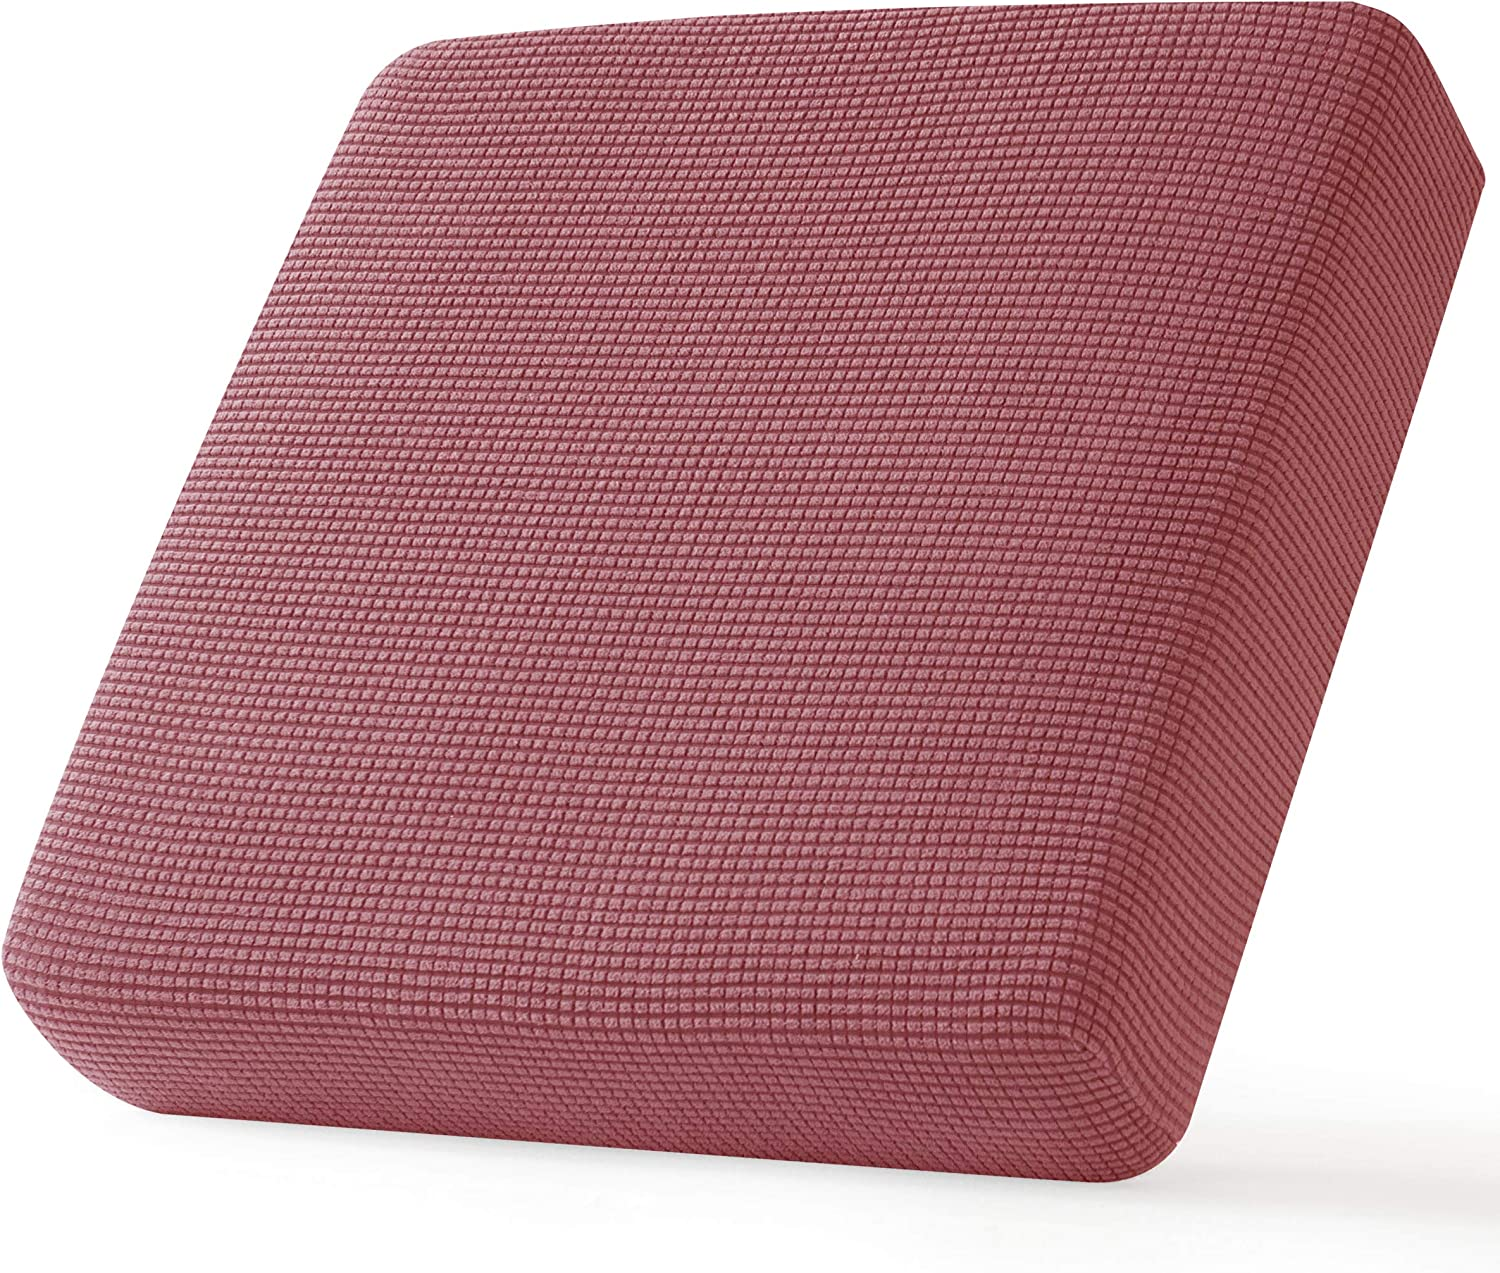 CHUN YI Stretch Couch Cushion Cover Replacement, Fitted Loveseat Sofa Chair Seat Slipcover Furniture Protector, Checks Spandex Jacquard Fabric, Small, Coral Pink